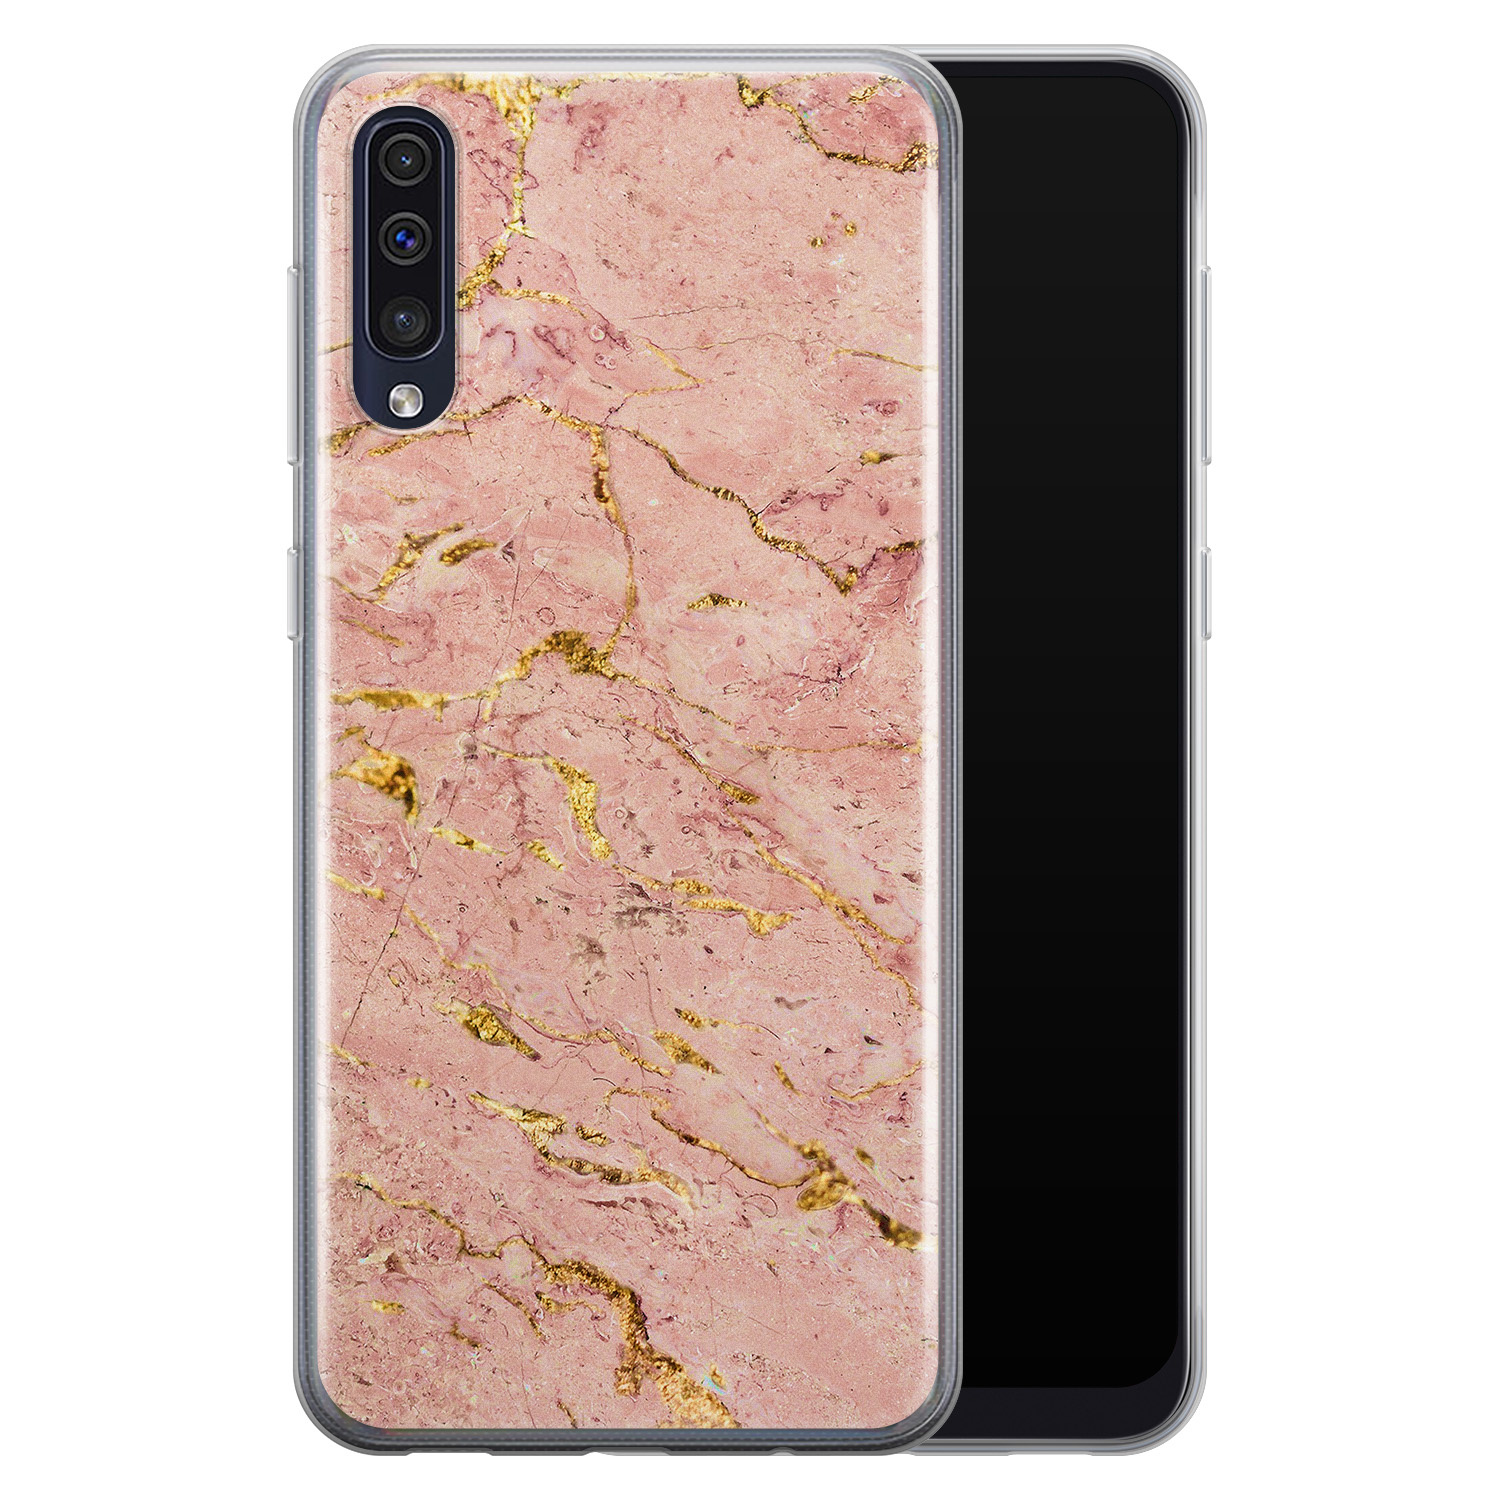 Samsung Galaxy A50/A30s siliconen hoesje - Marmer roze goud